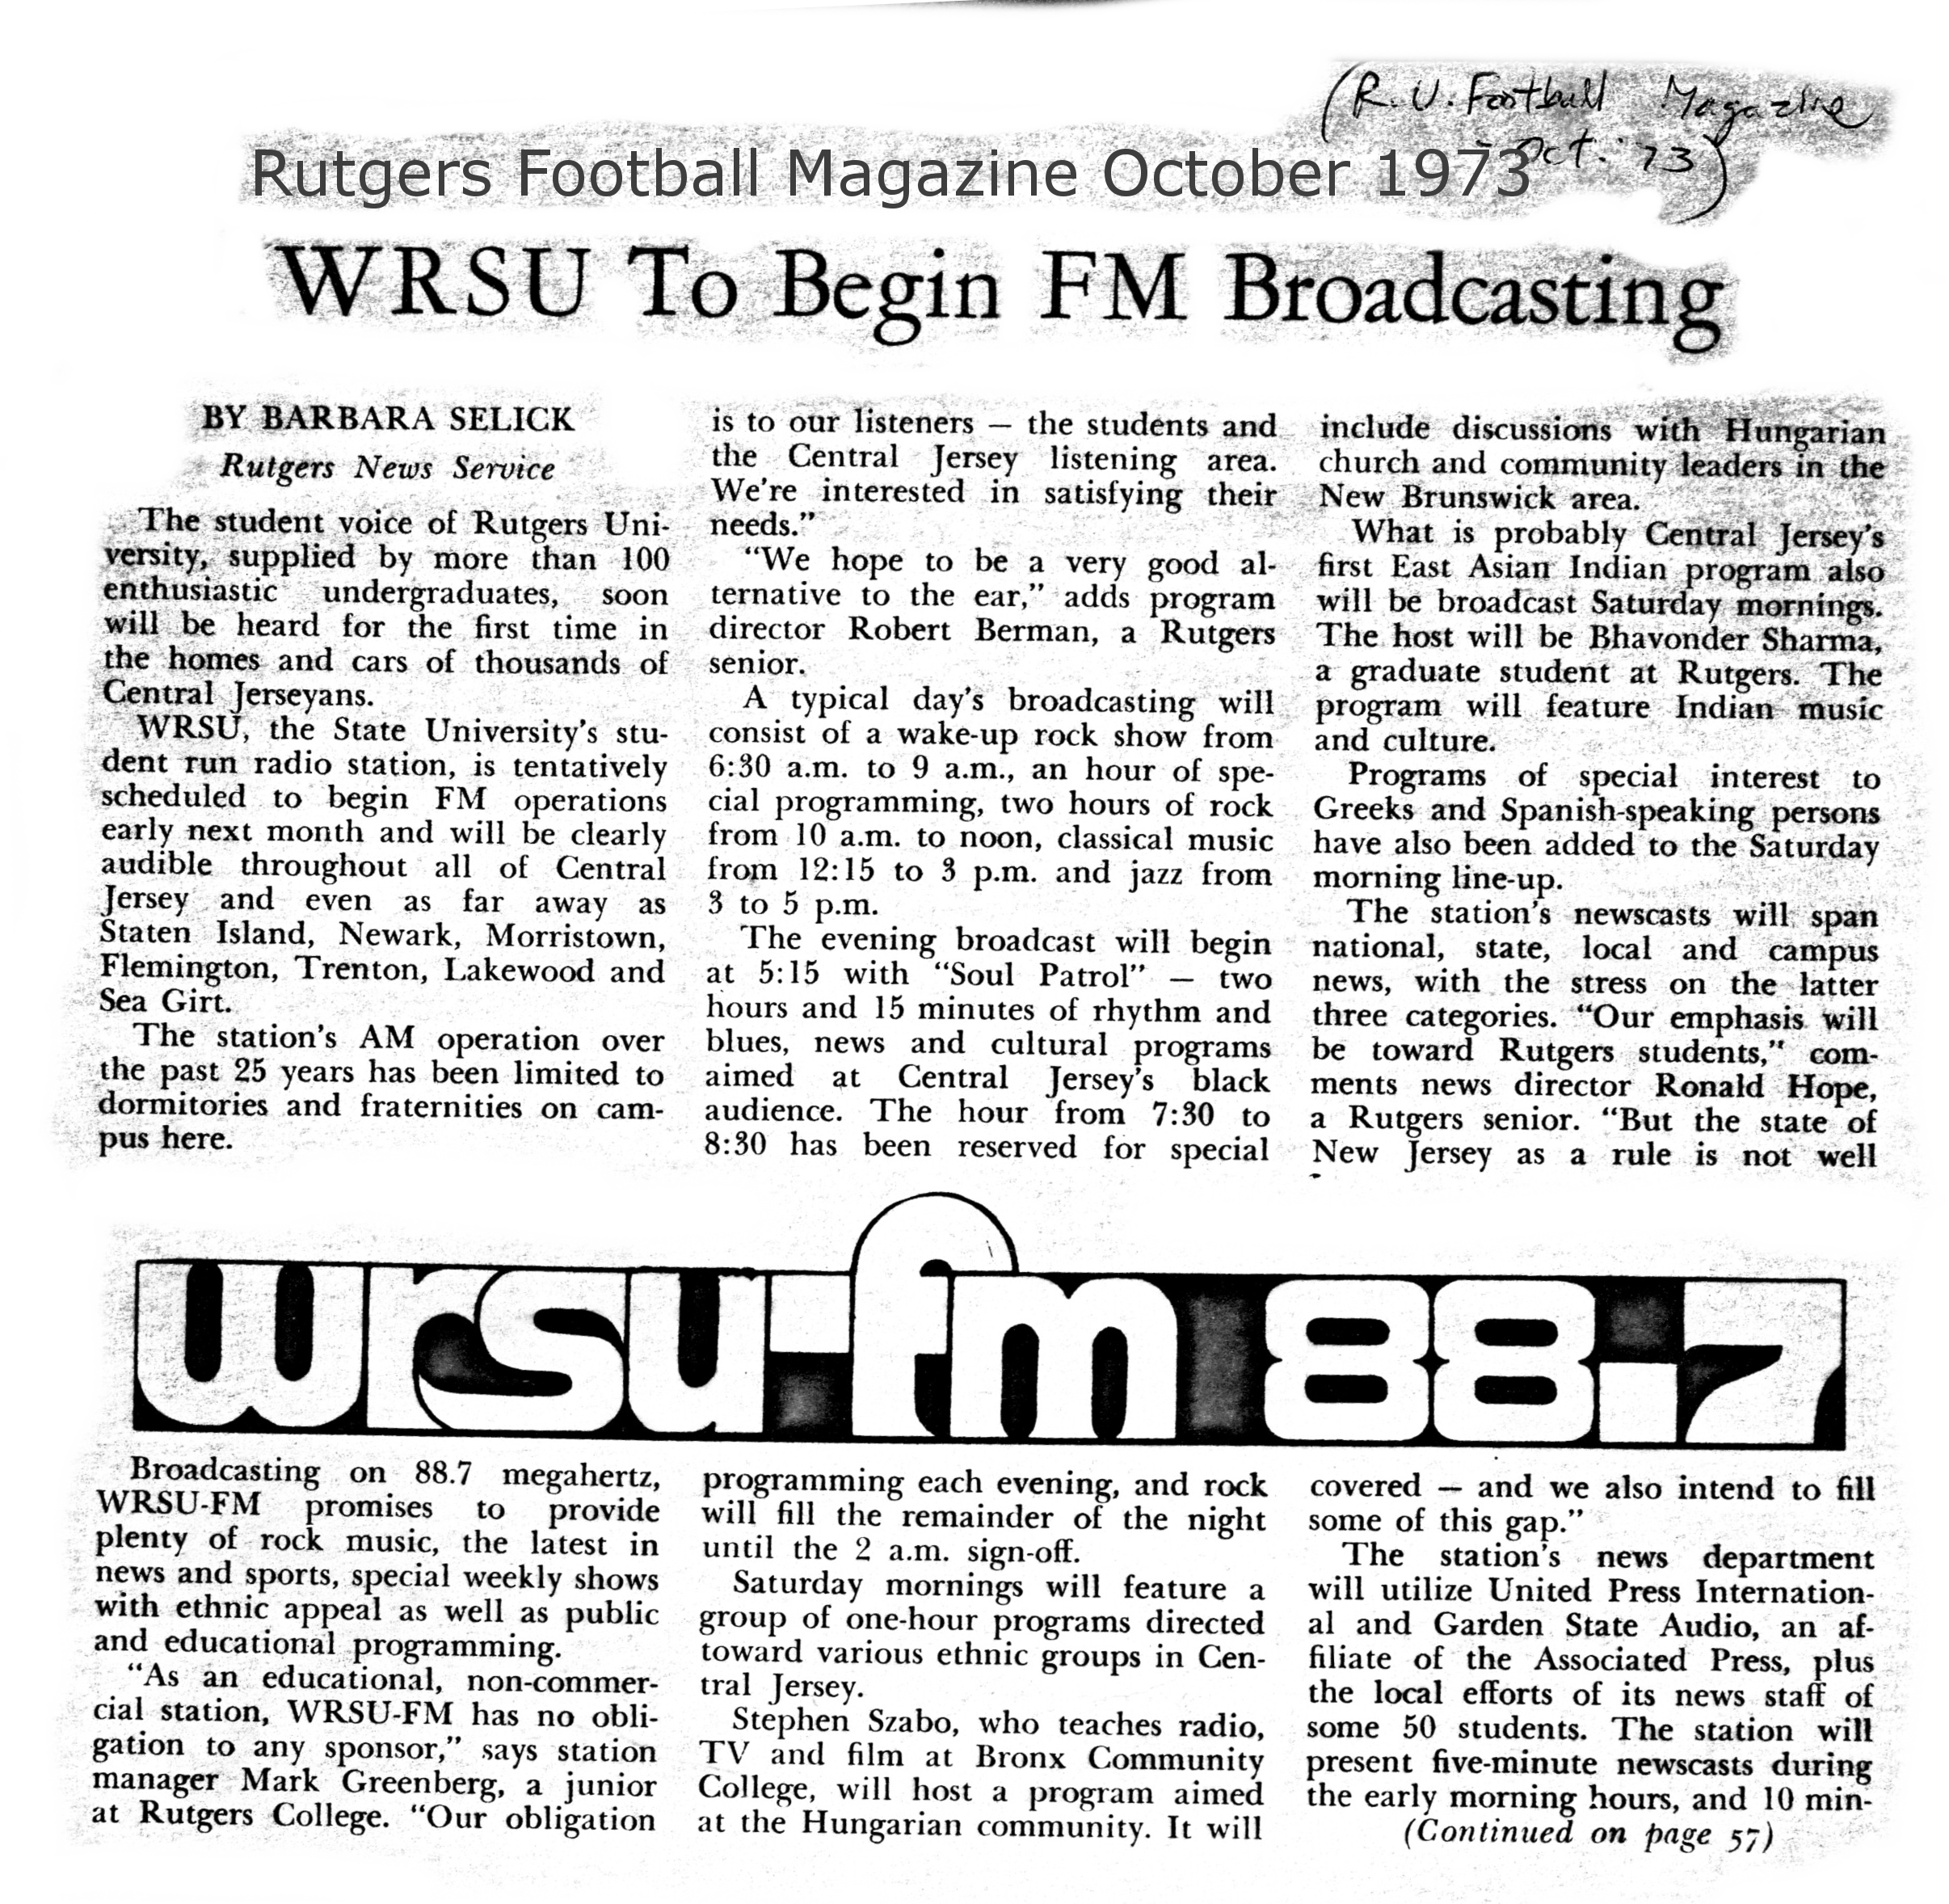 1973 - FM is coming along - Rutgers Football Magazine